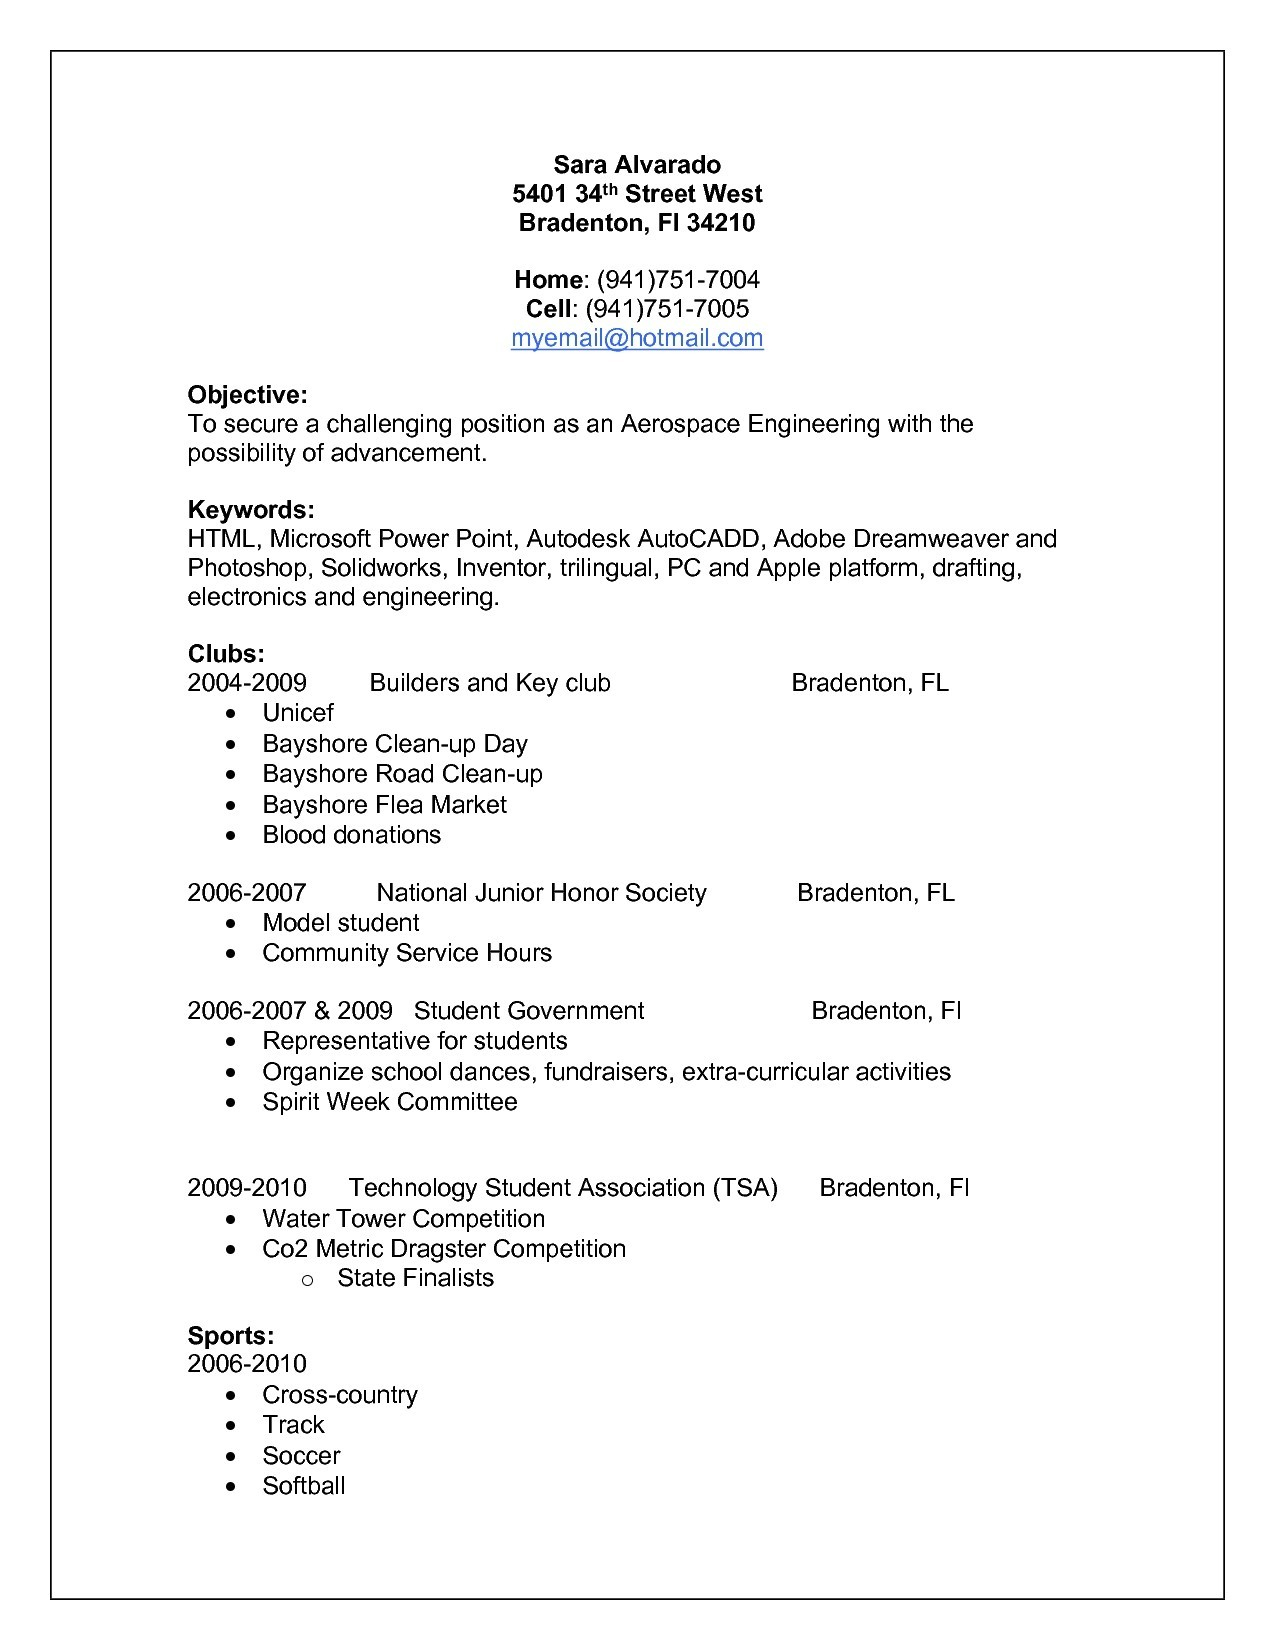 Resume Employment History - Resume Employment History Awesome Fresh Resume Page format New 28